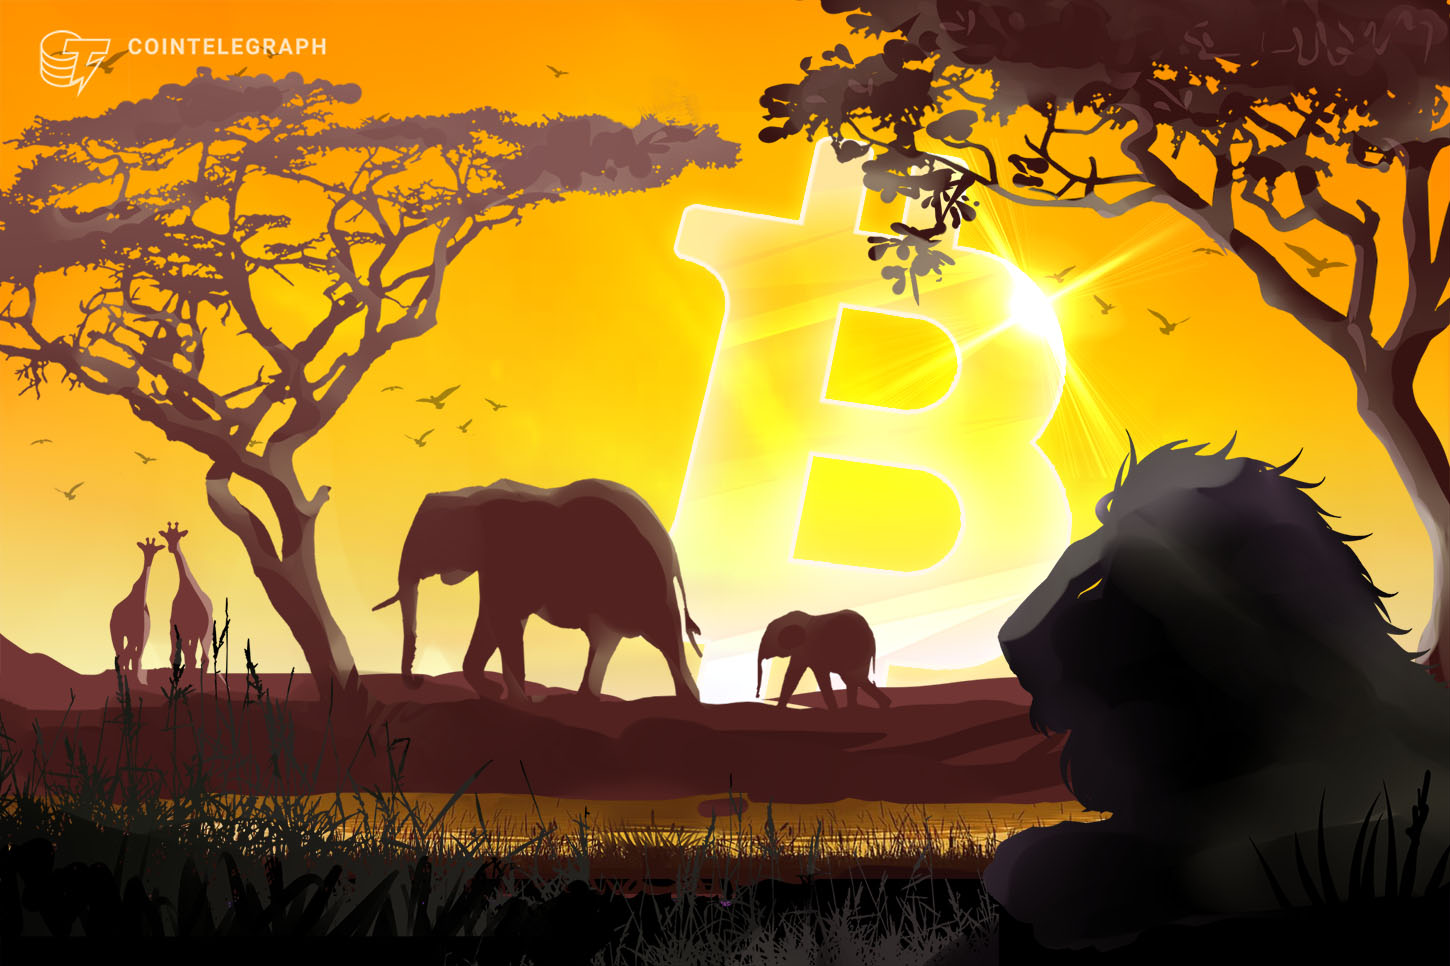 Documentary Review - Banking on Africa: The Bitcoin Revolution - Cointelegraph